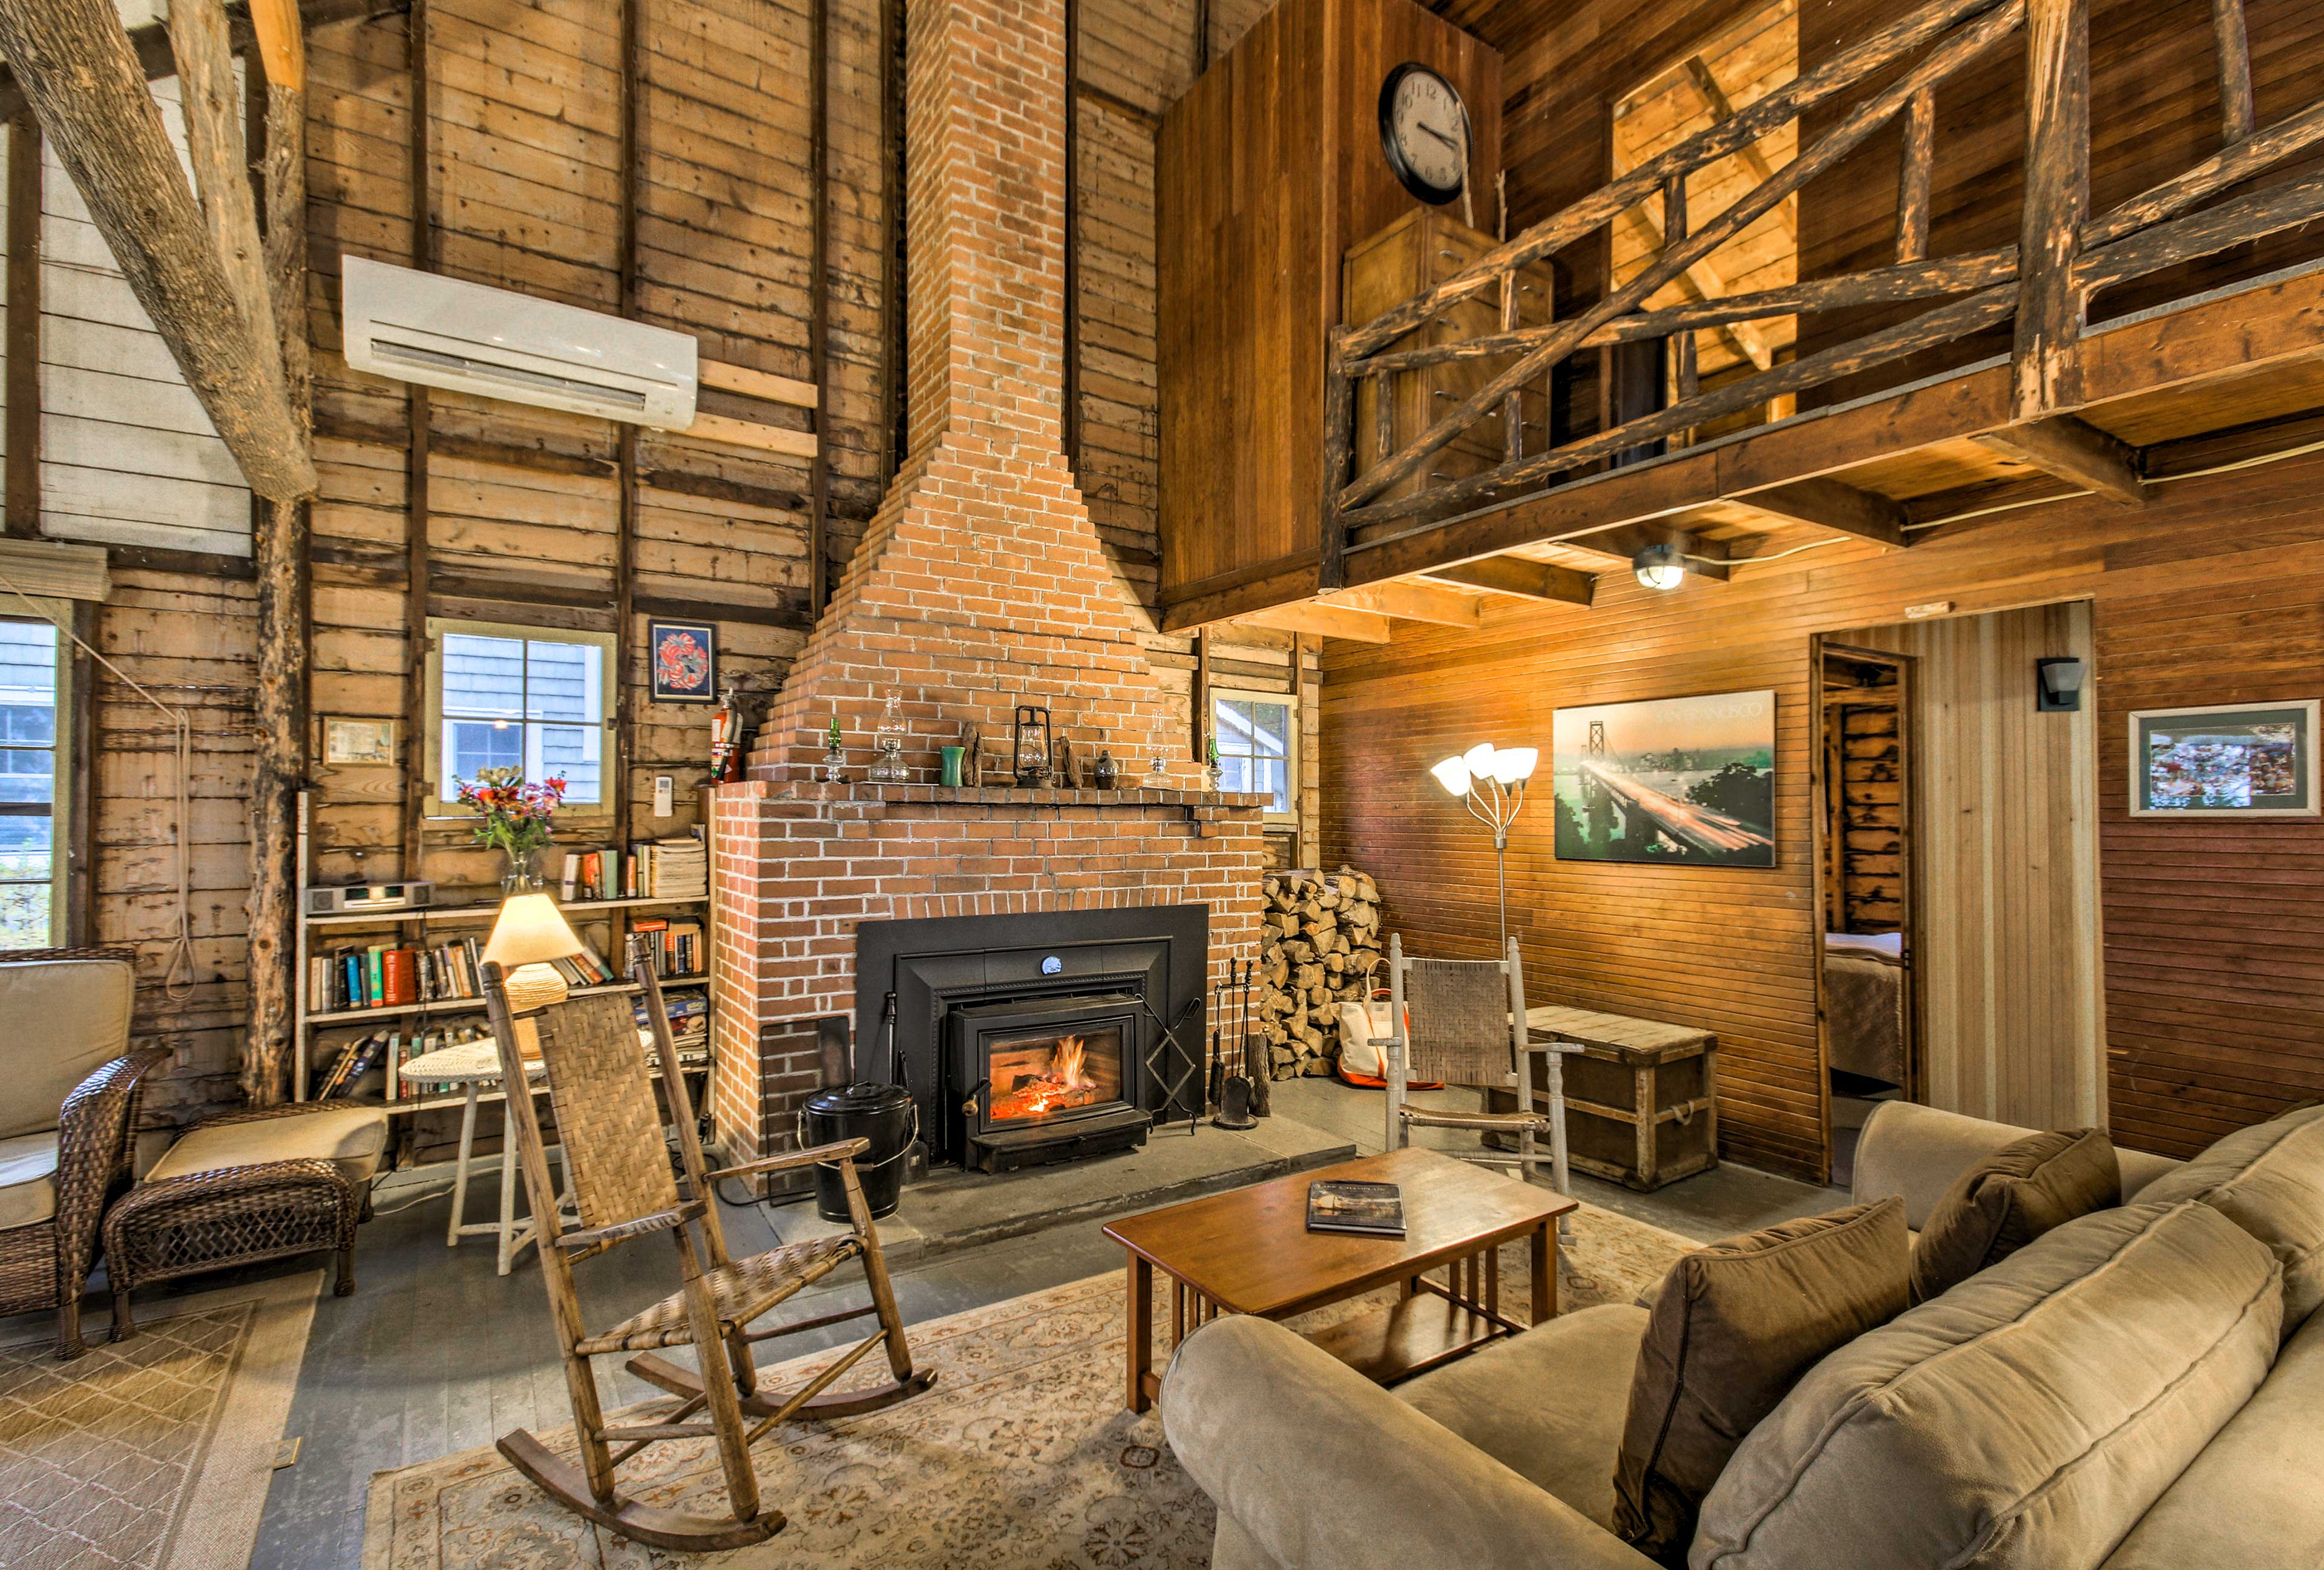 Up to 12 guests can sleep in this 4-bed, 2-bath vacation rental home!